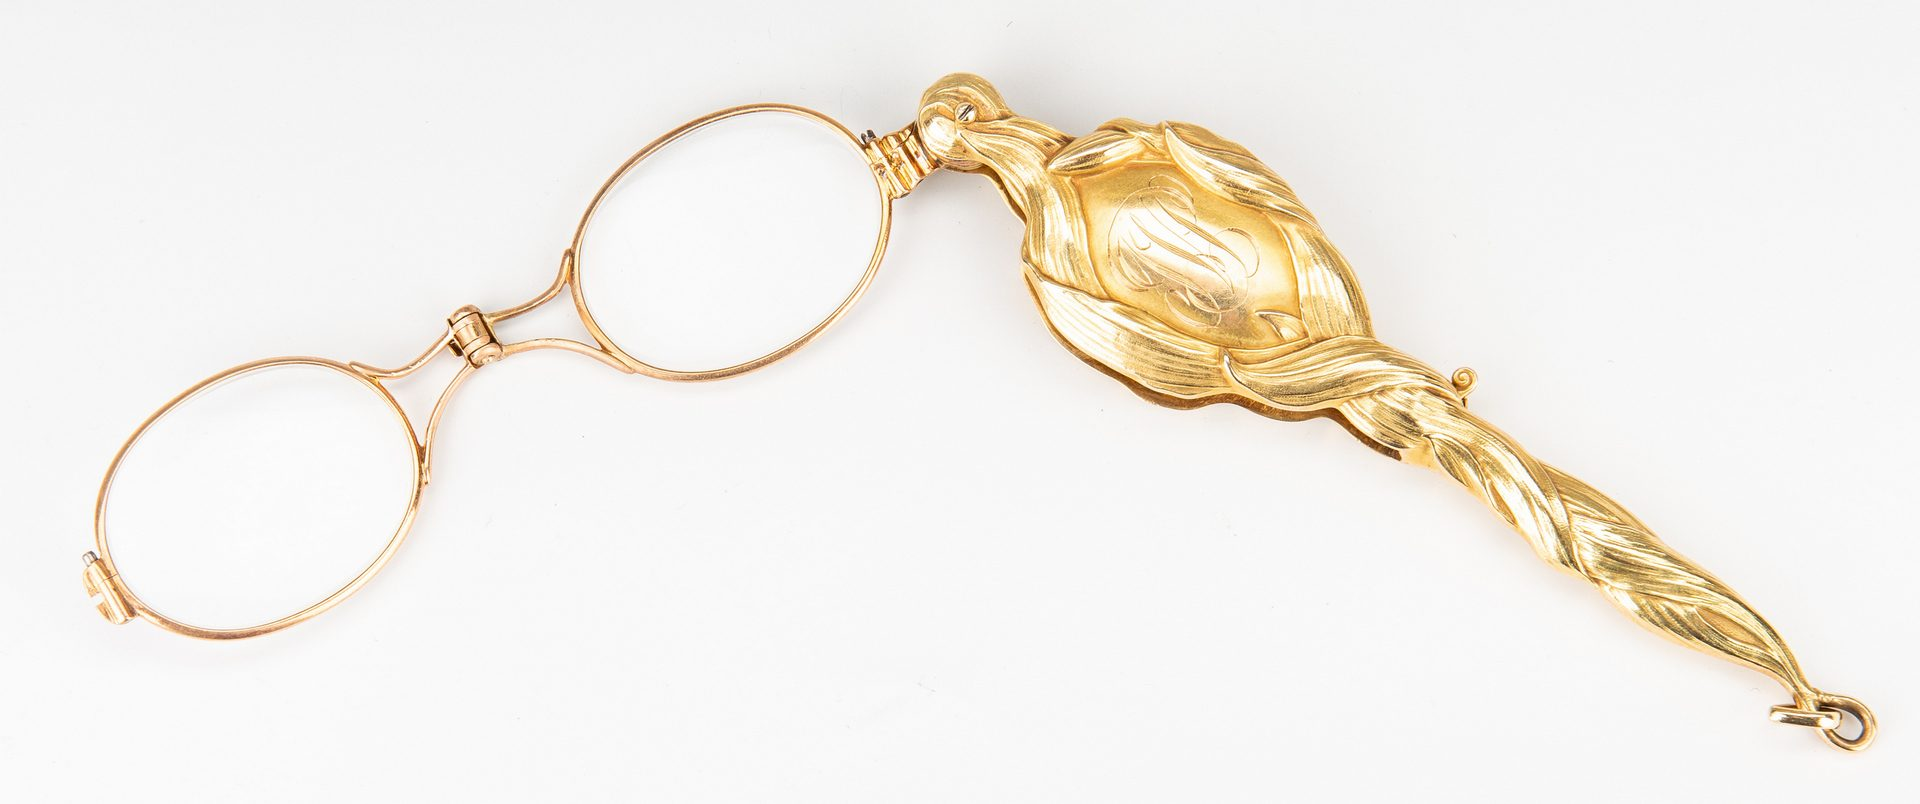 Lot 182: Art Nouveau Gold Lorgnette